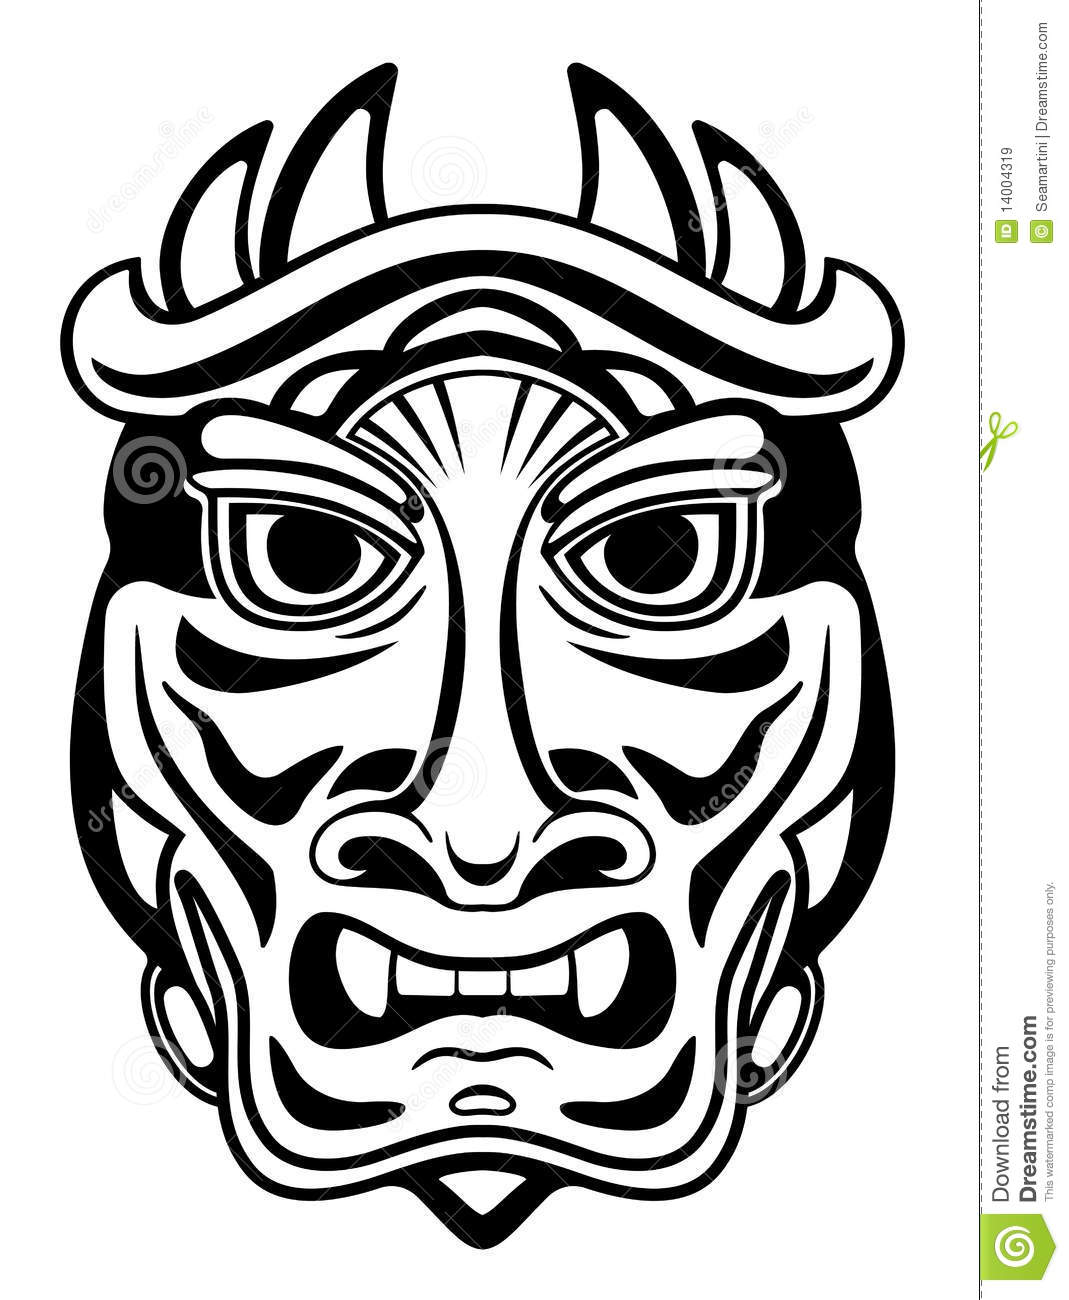 Ancient mask stock vector. Image of ceremony, carving